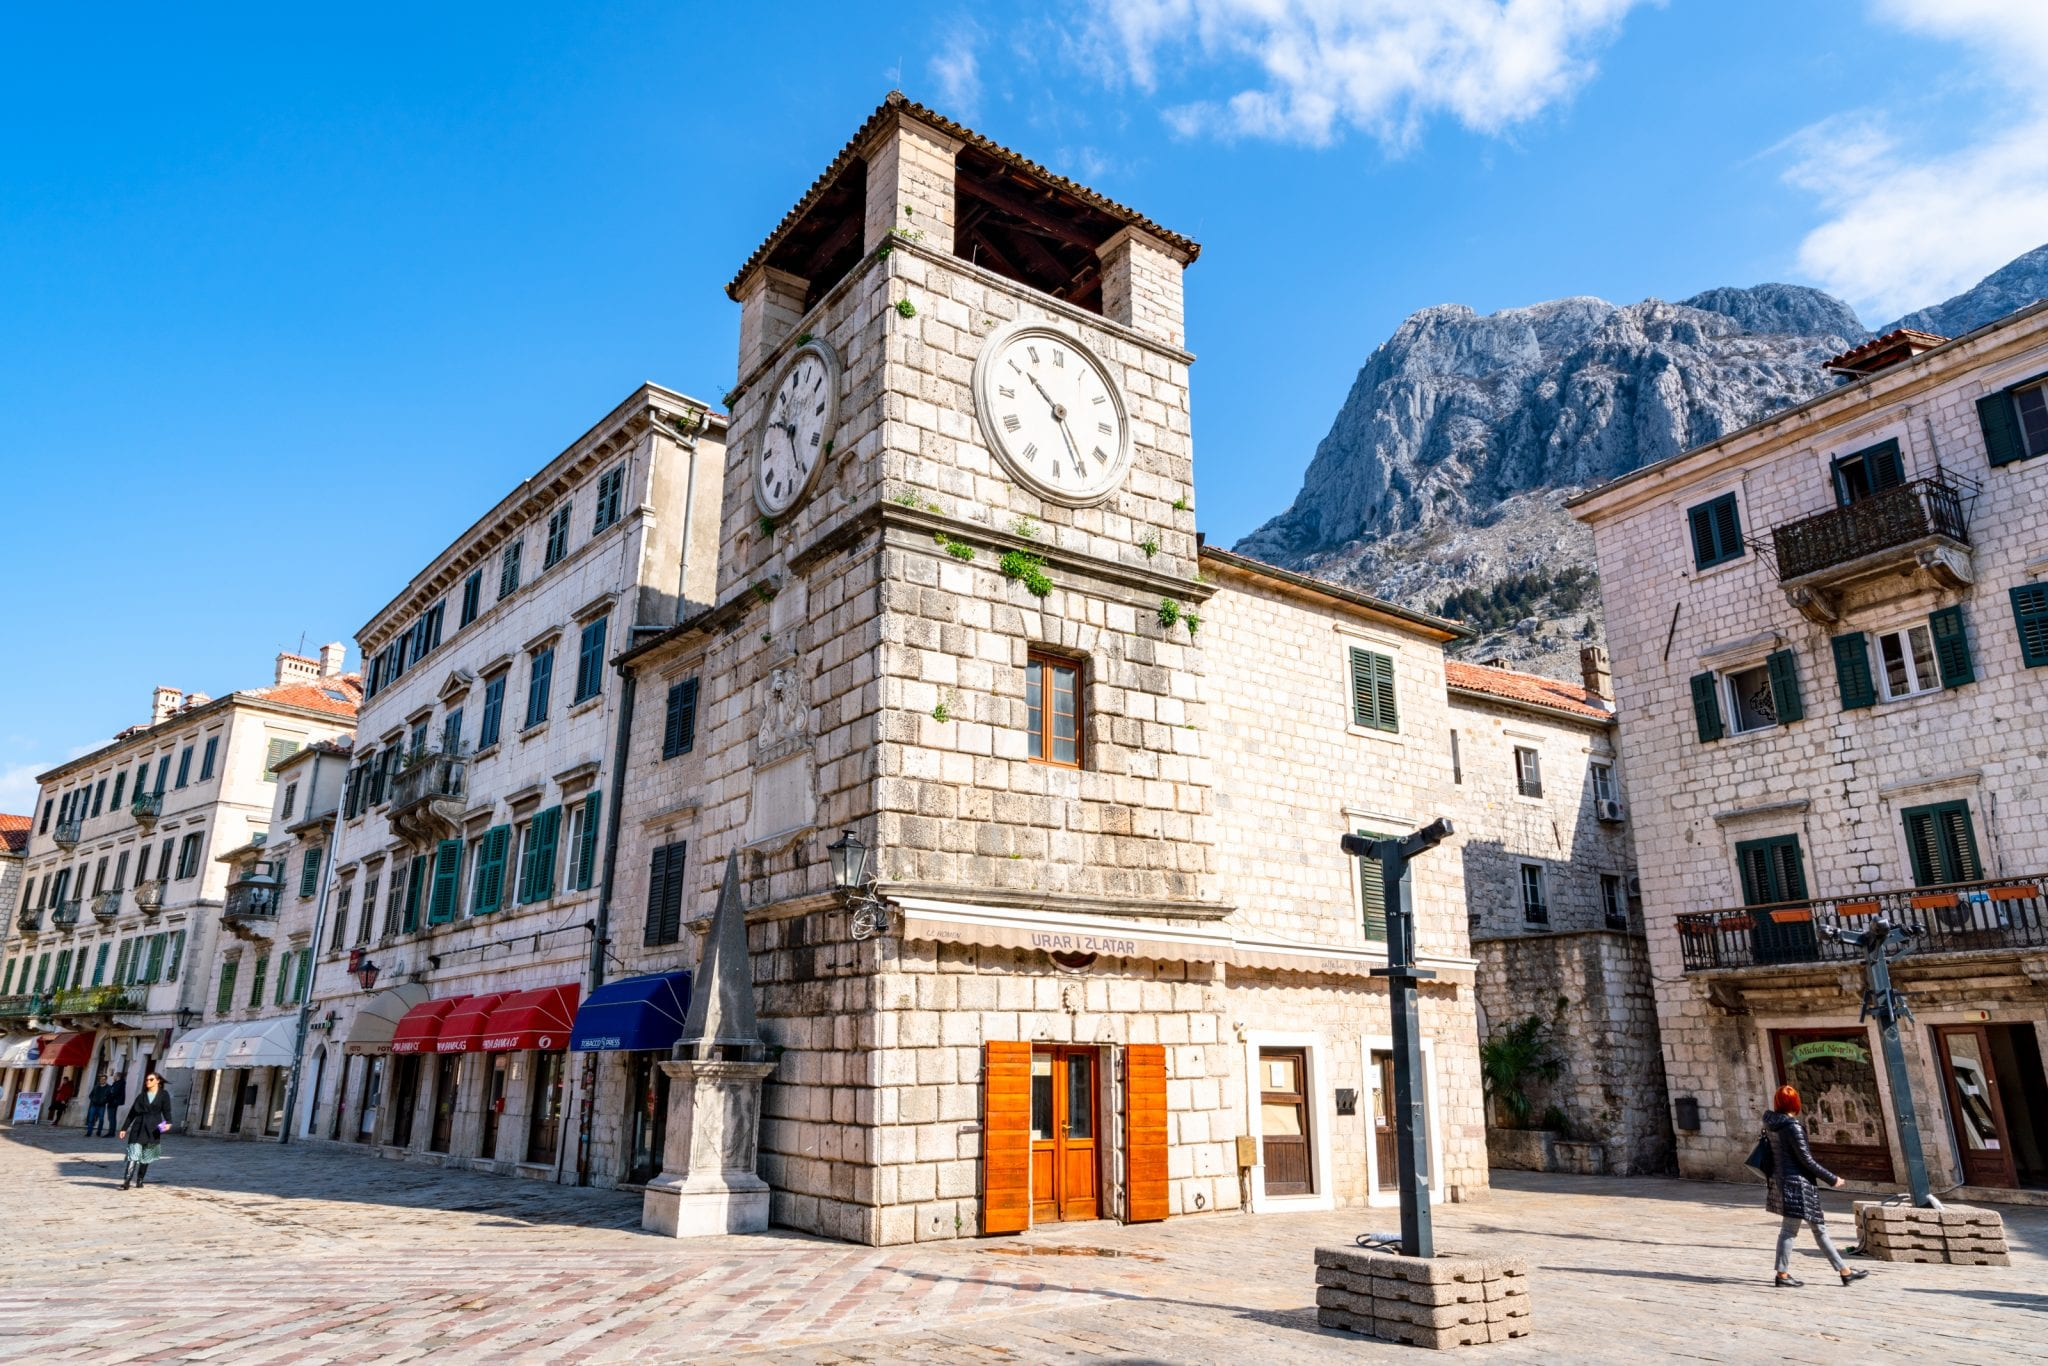 Clock tower in Kotor Old Town: Best Things to Do in Kotor Montenegro